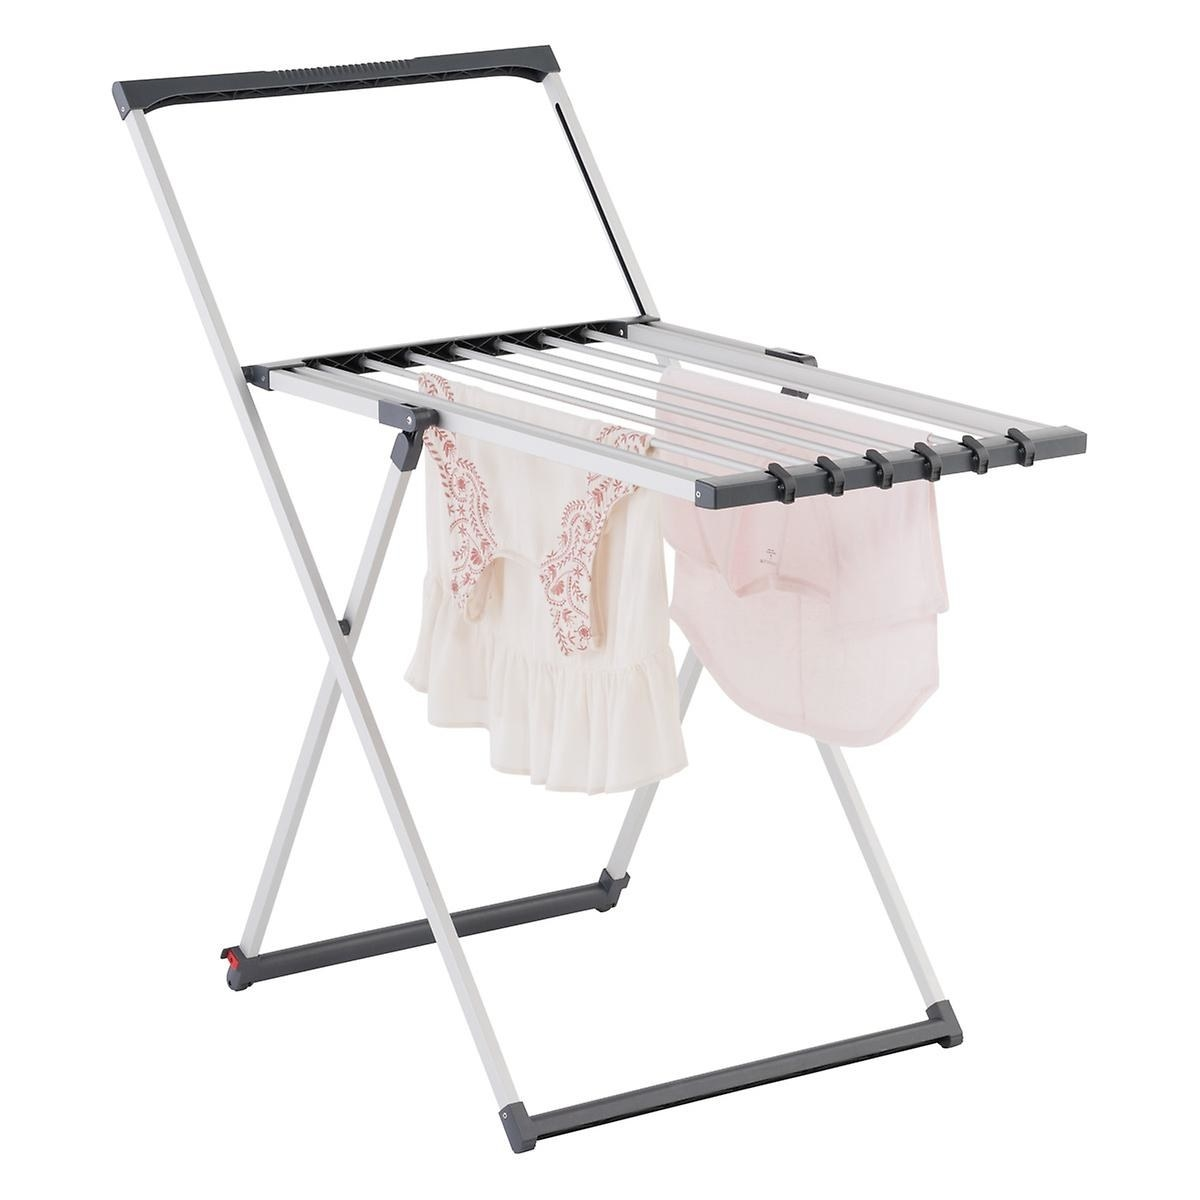 A metallic with gray accents drying rack with clothes hanging from it